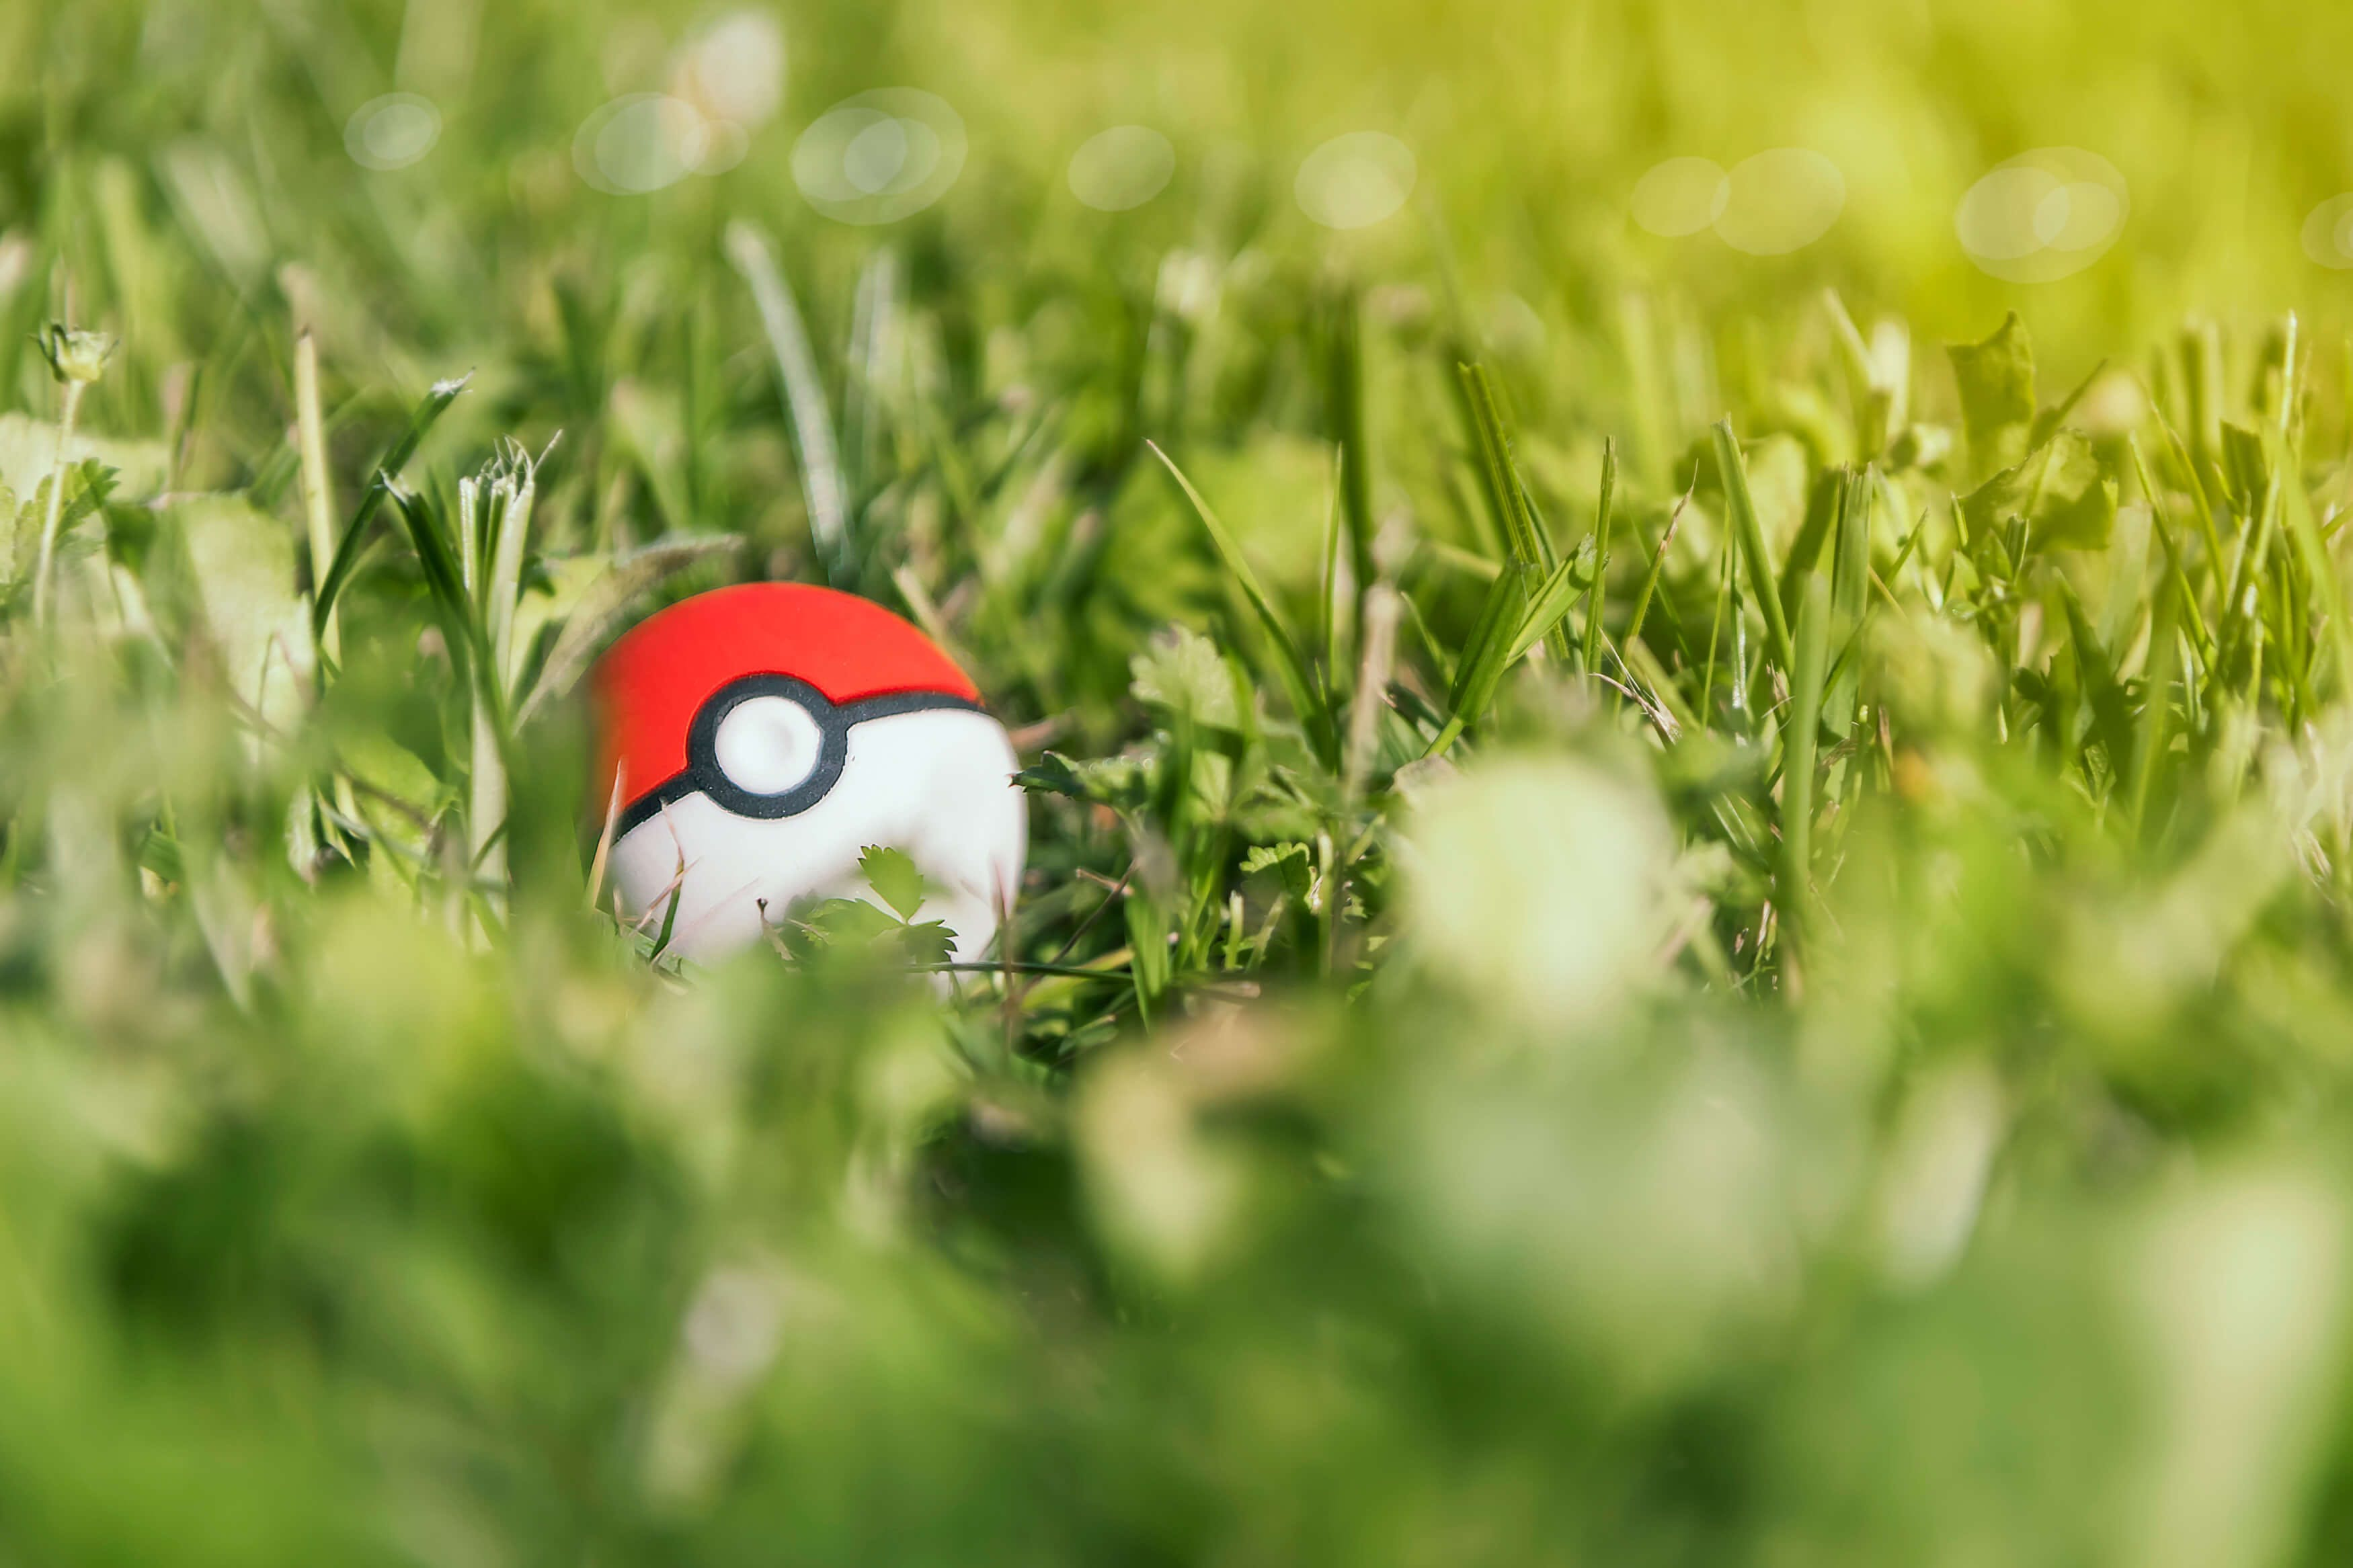 A pokeball sitting in a field of grass.